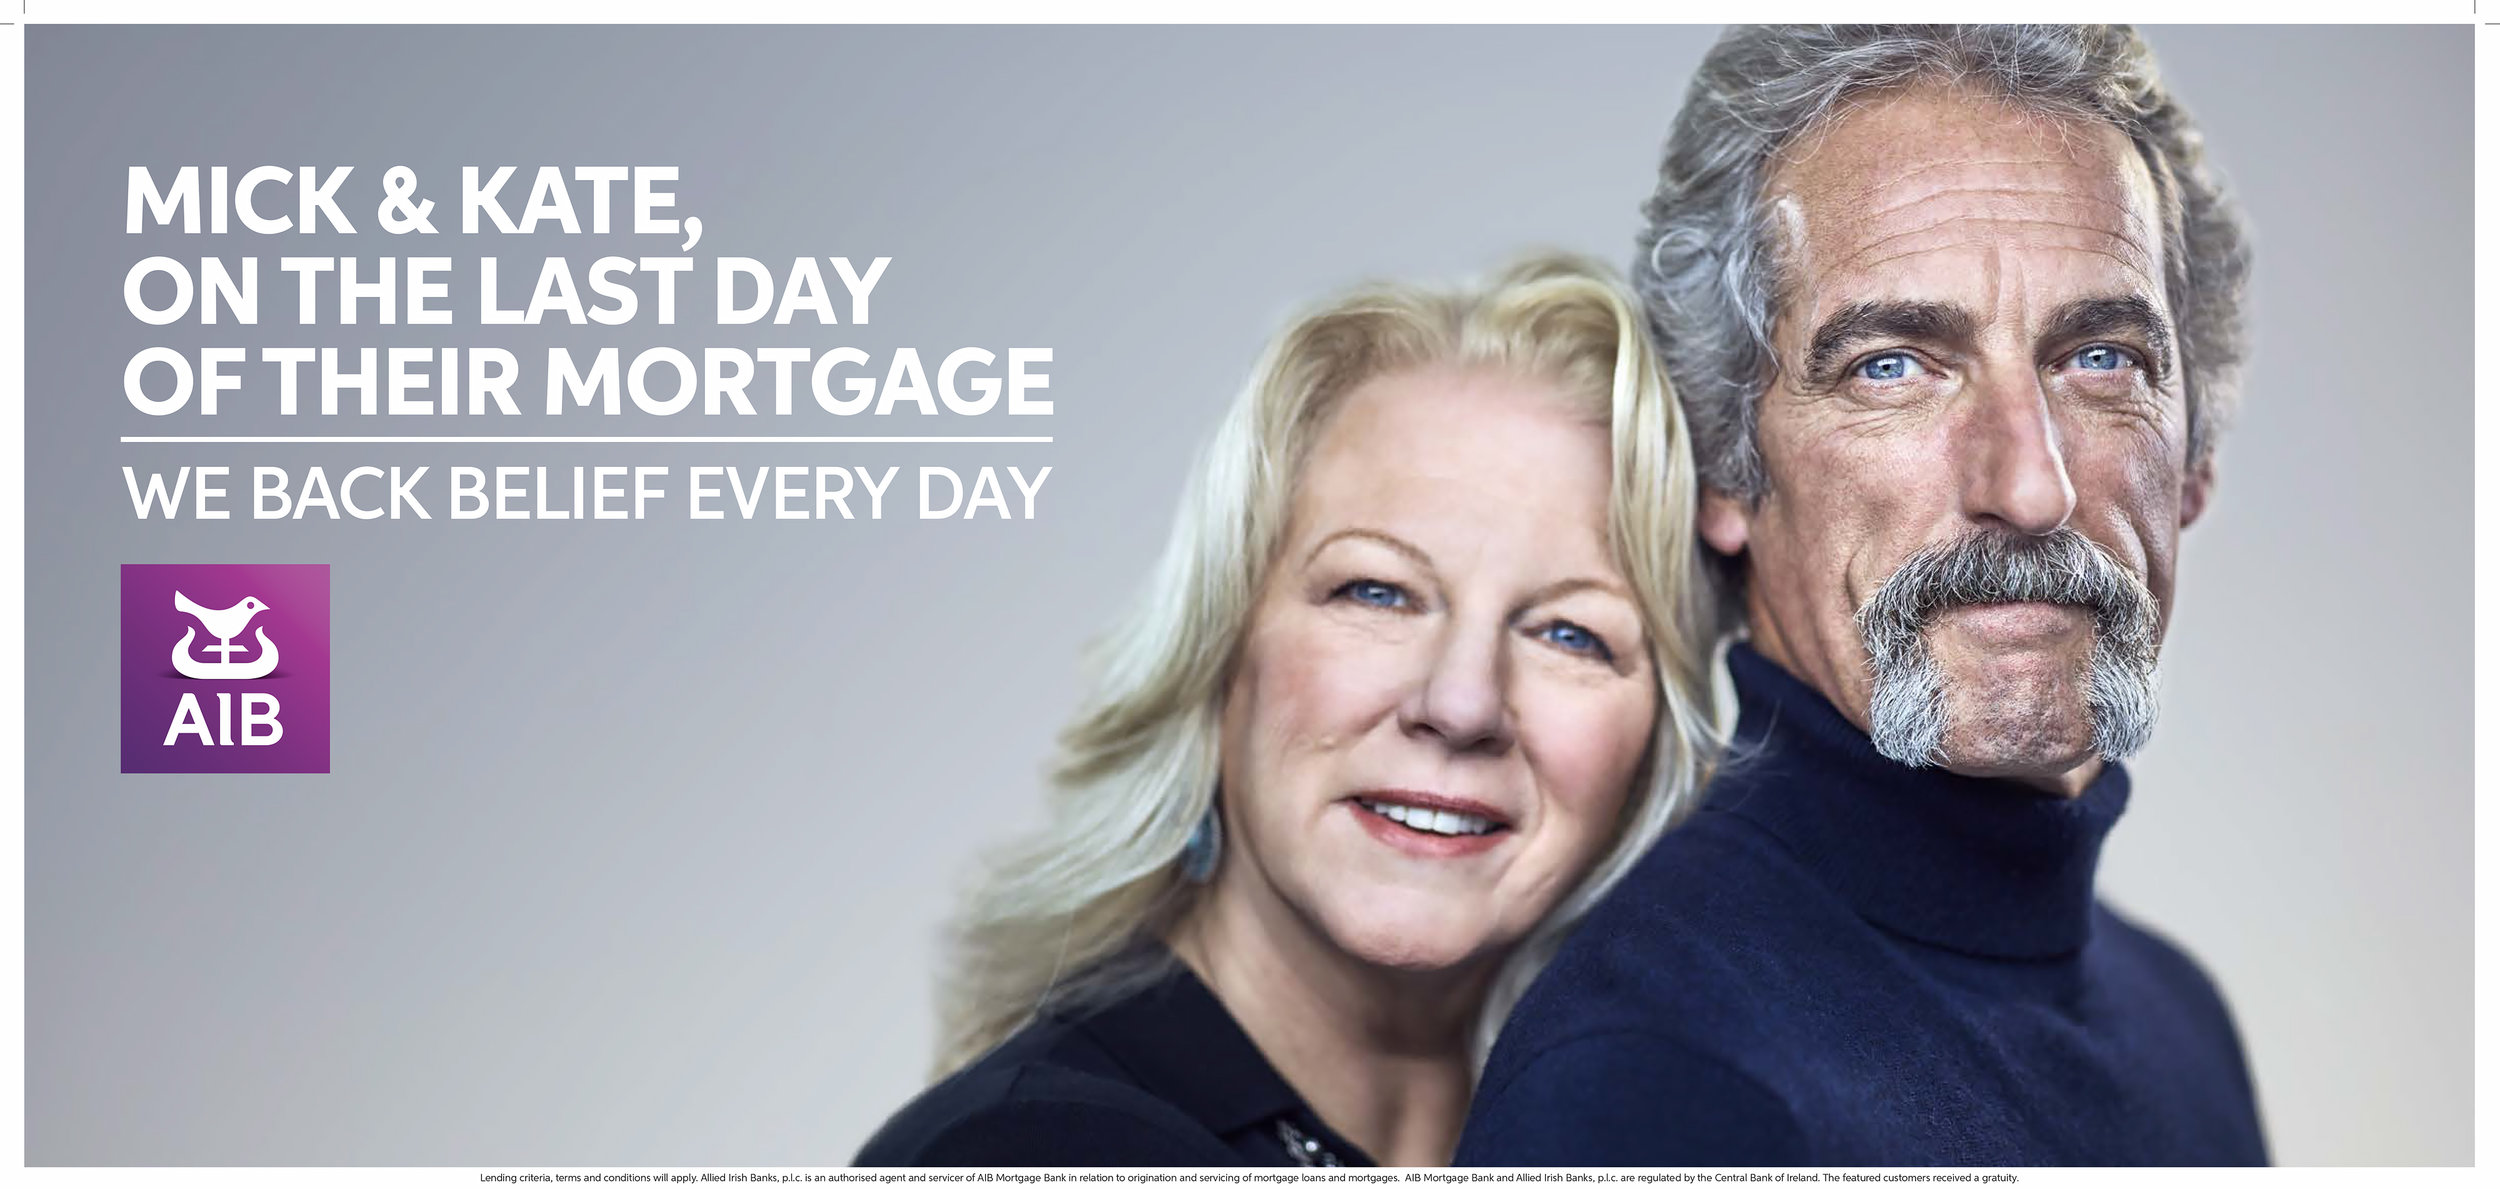 05841RO Mortgages Mick&Kate 48S.jpg